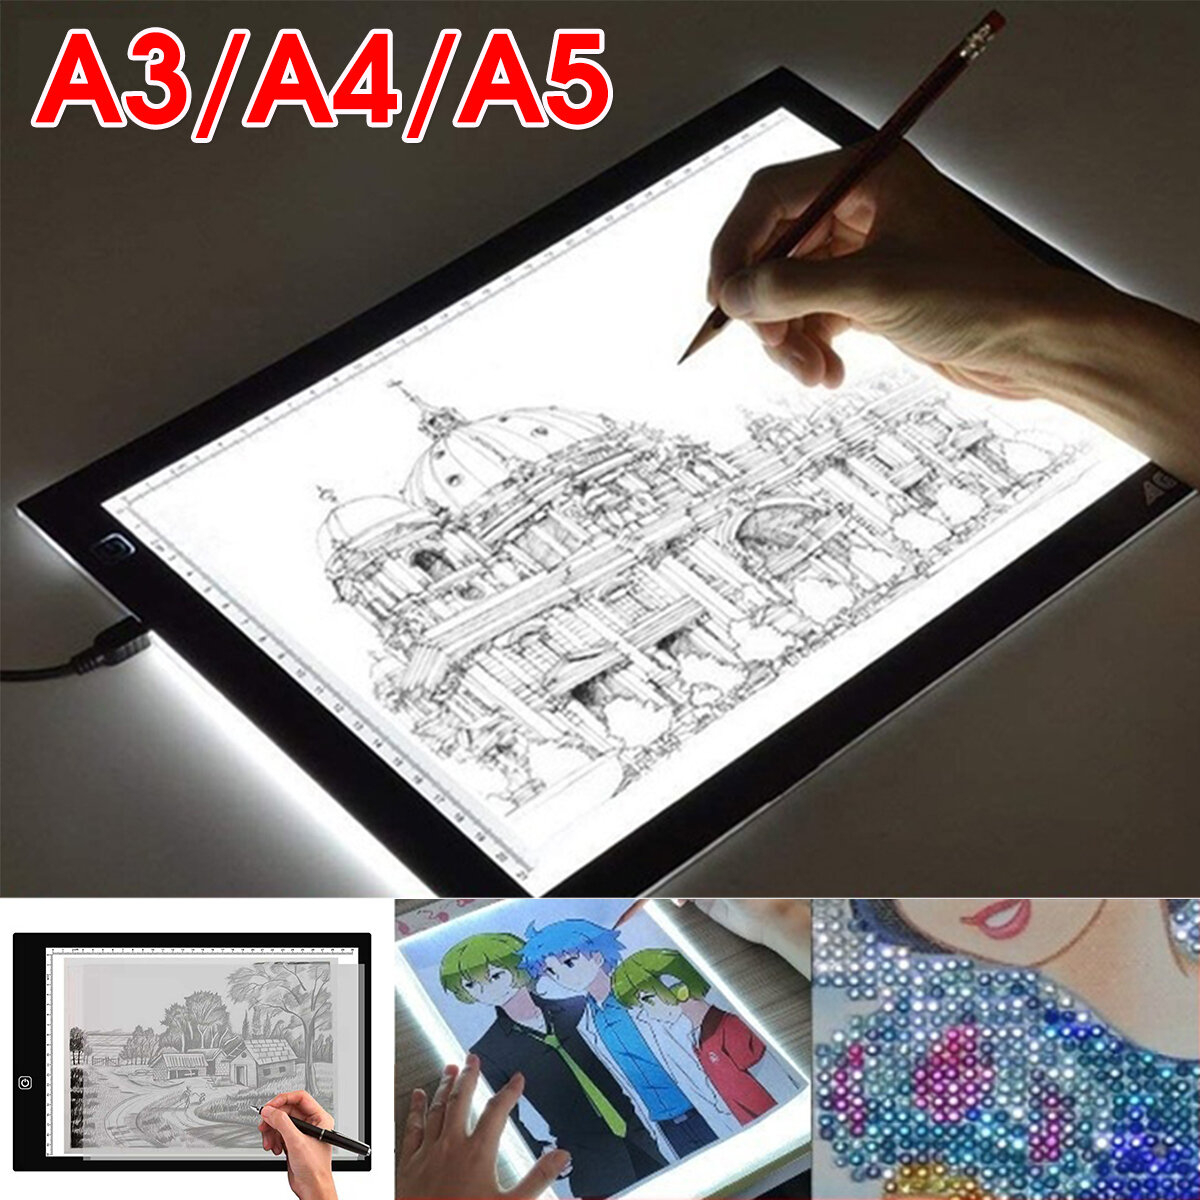 A3 A4 A5 Led Light Box Tracing Drawing Board Art Design Pad Slim Lightbox  Usb Projector